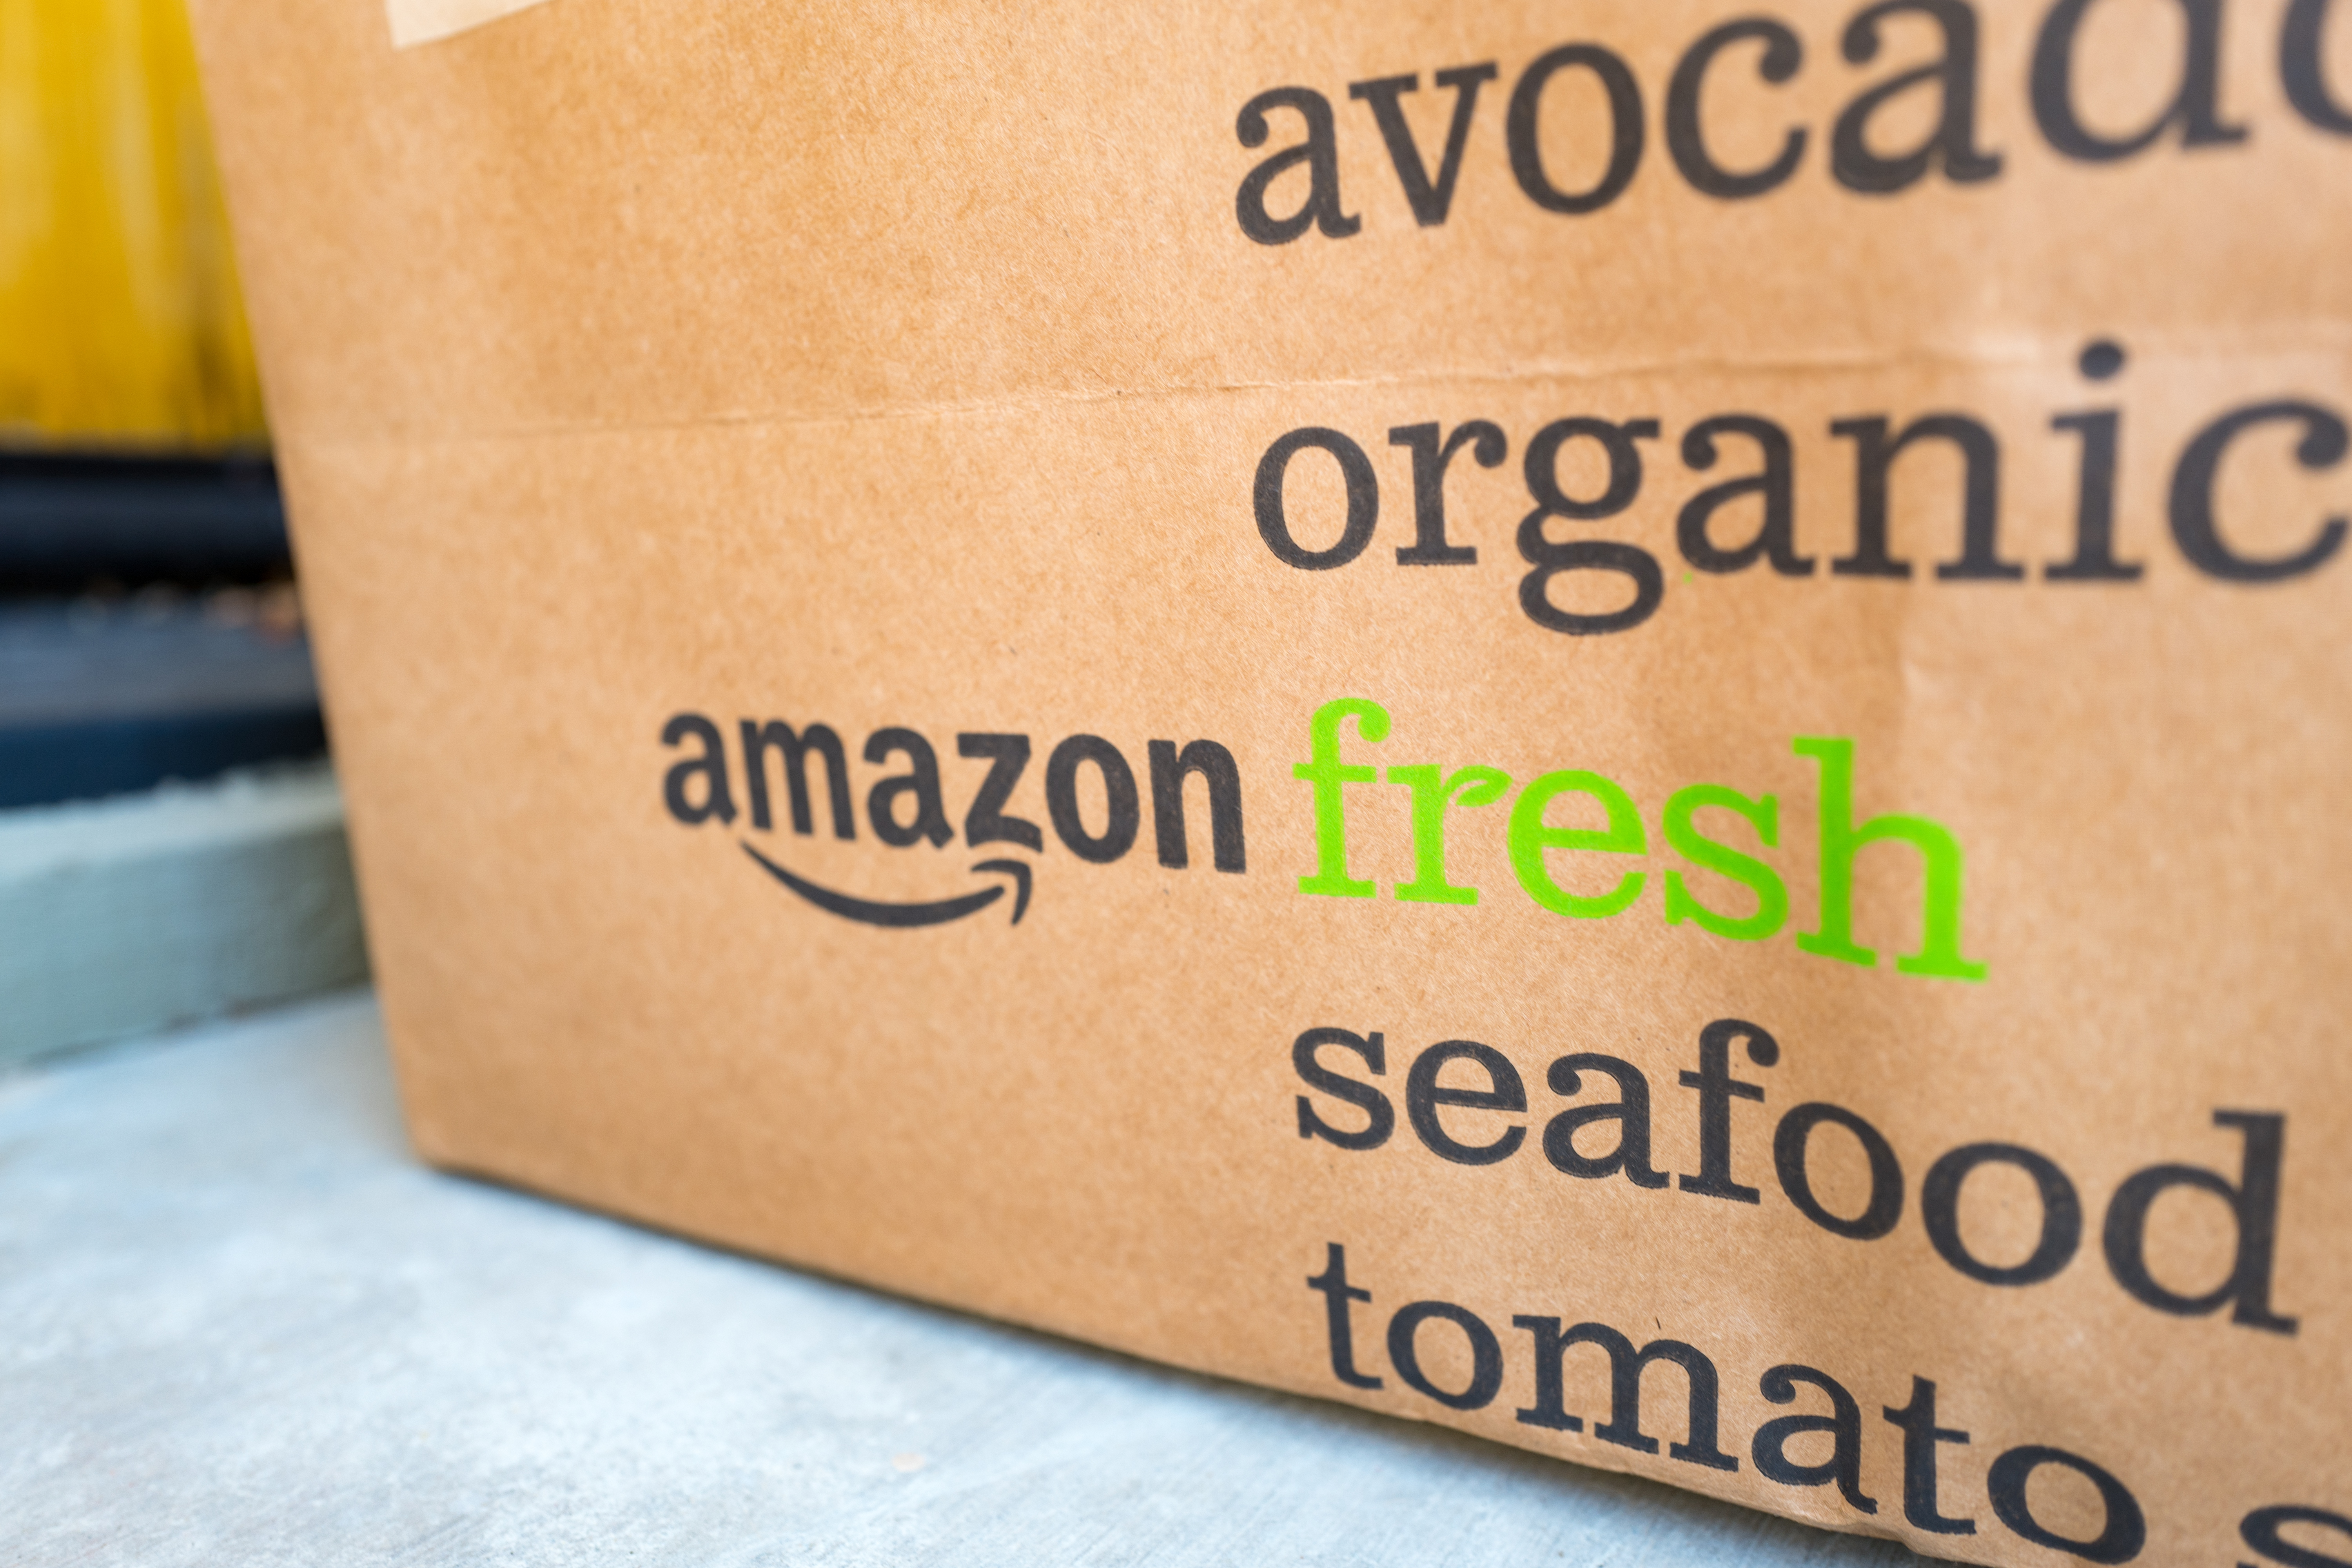 Brown paper tote for Amazon Fresh grocery delivery service, with Amazon logo and text listing groceries which may be ordered using the service